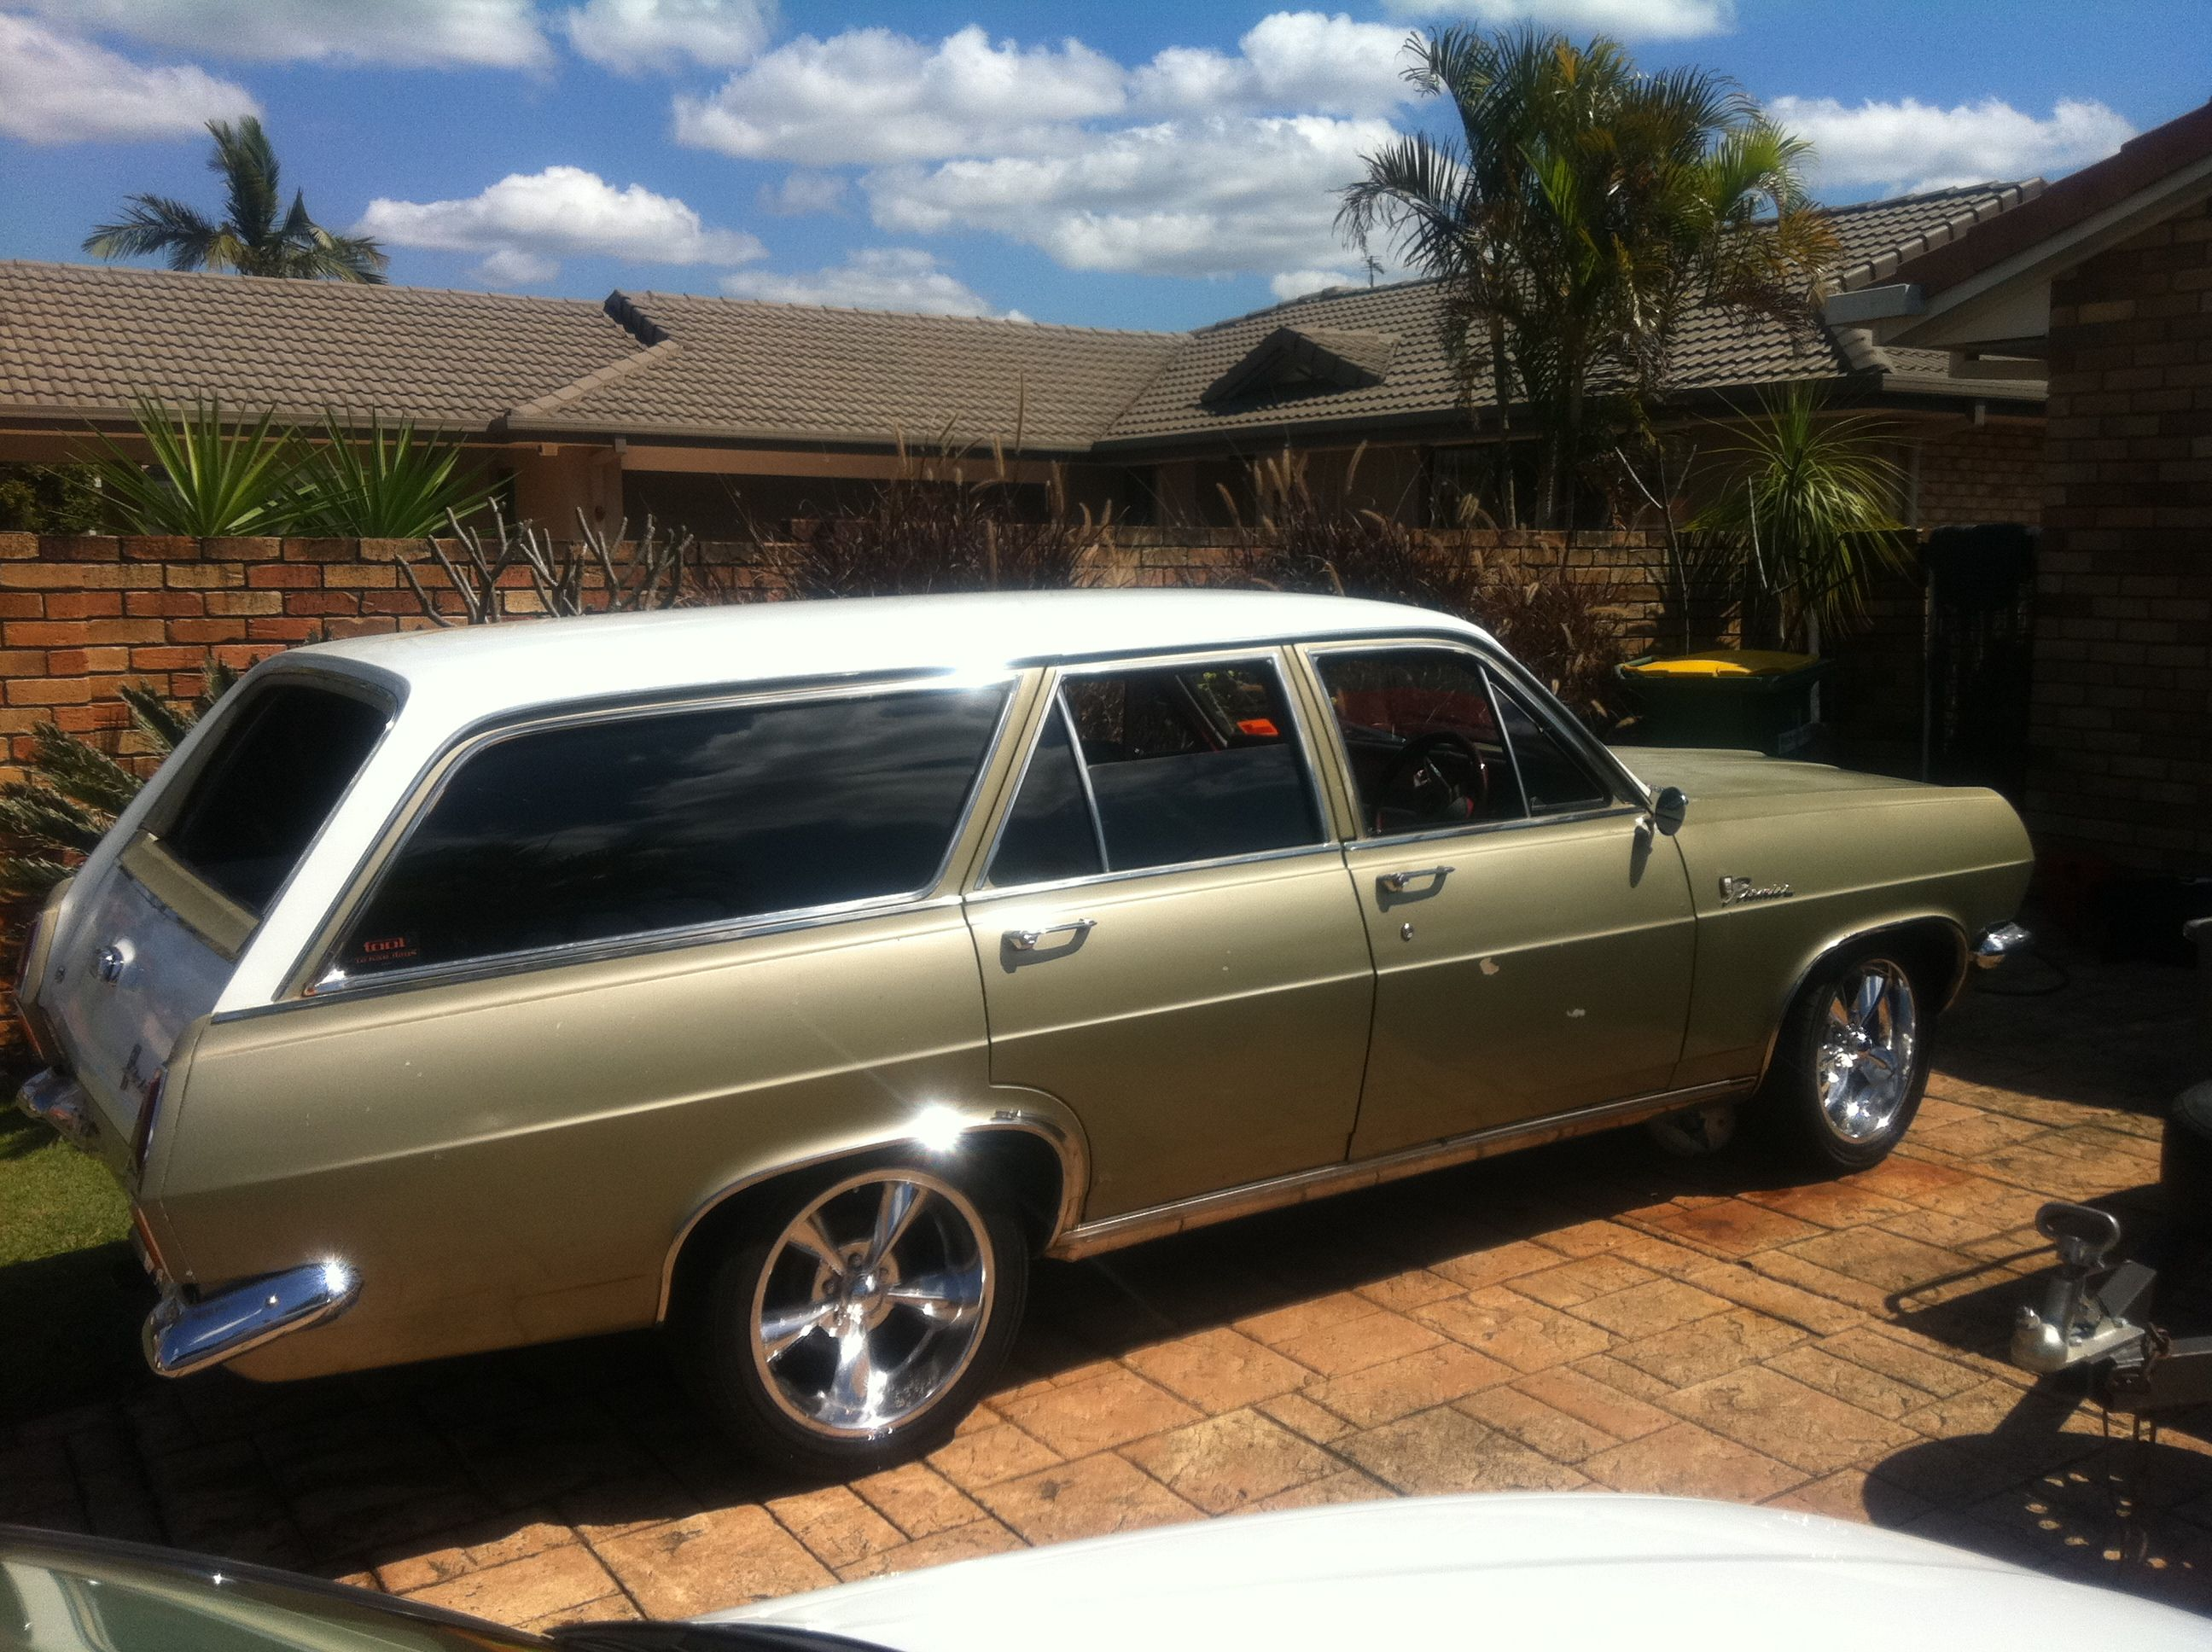 66 HR Holden Station Wagon | Aussie GM - Holden ( + Chev, Isuzu ...